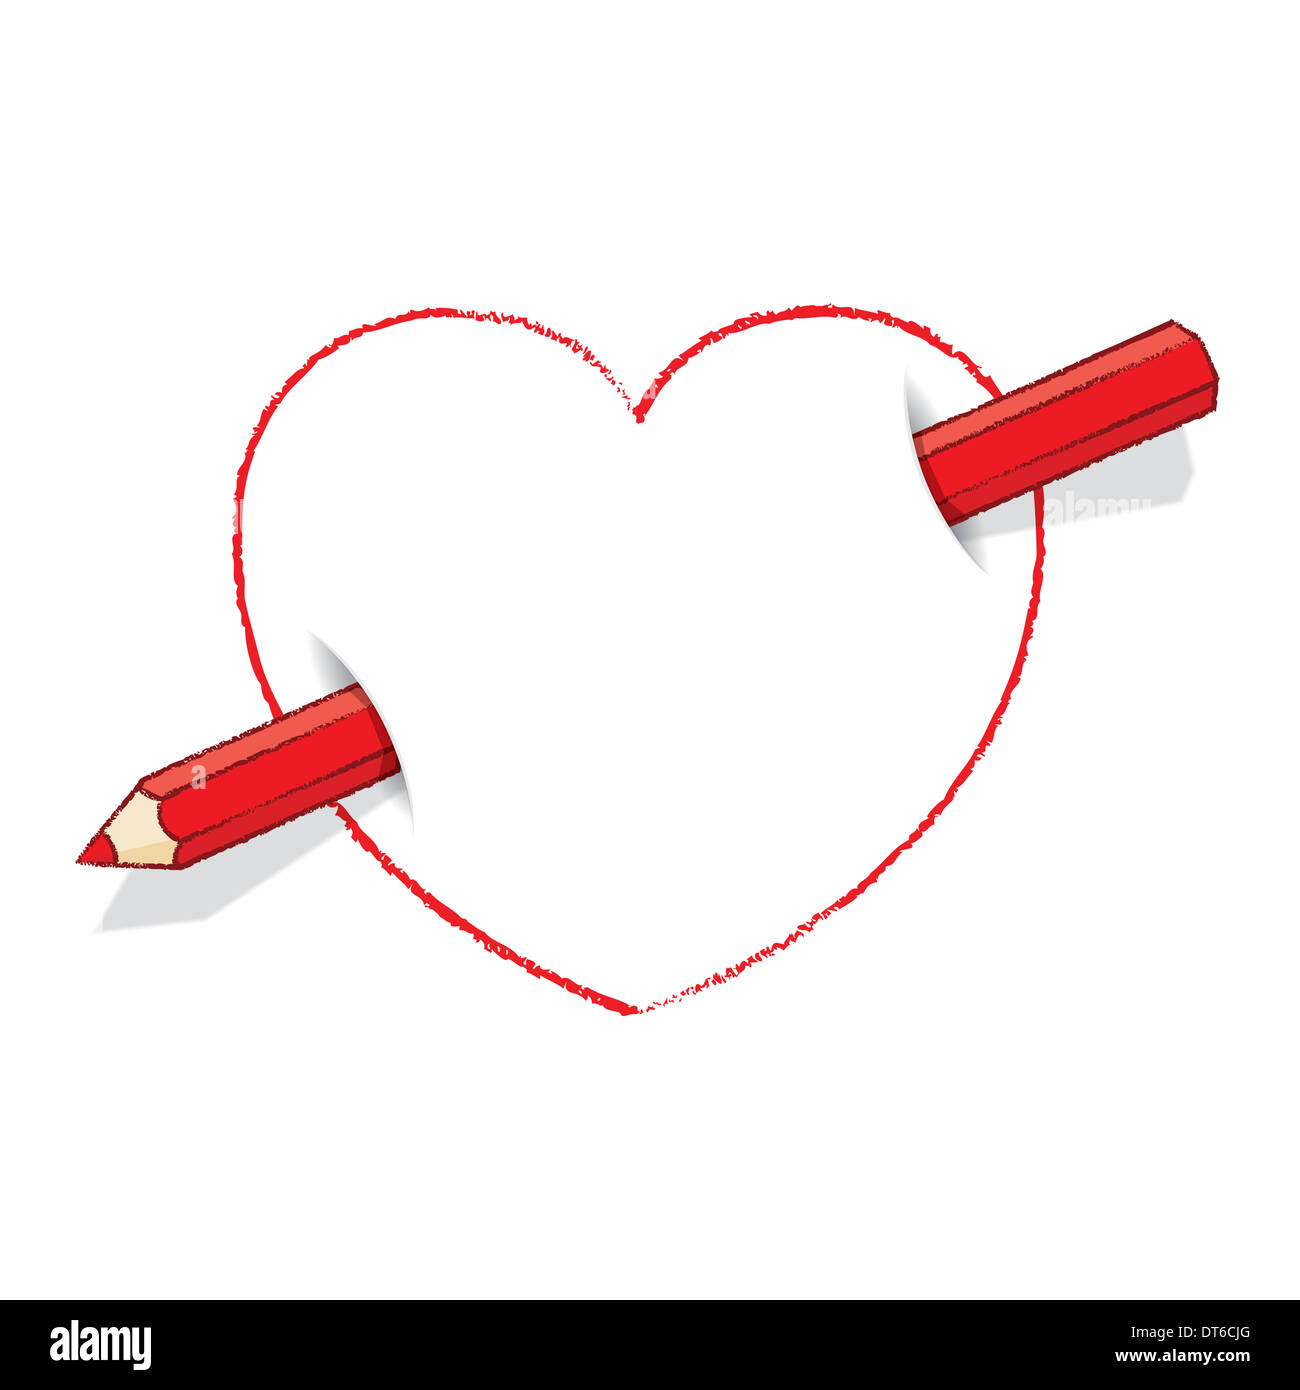 Diagonal red pencil piercing empty drawn love heart like an arrow diagonal red pencil piercing empty drawn love heart like an arrow ccuart Choice Image